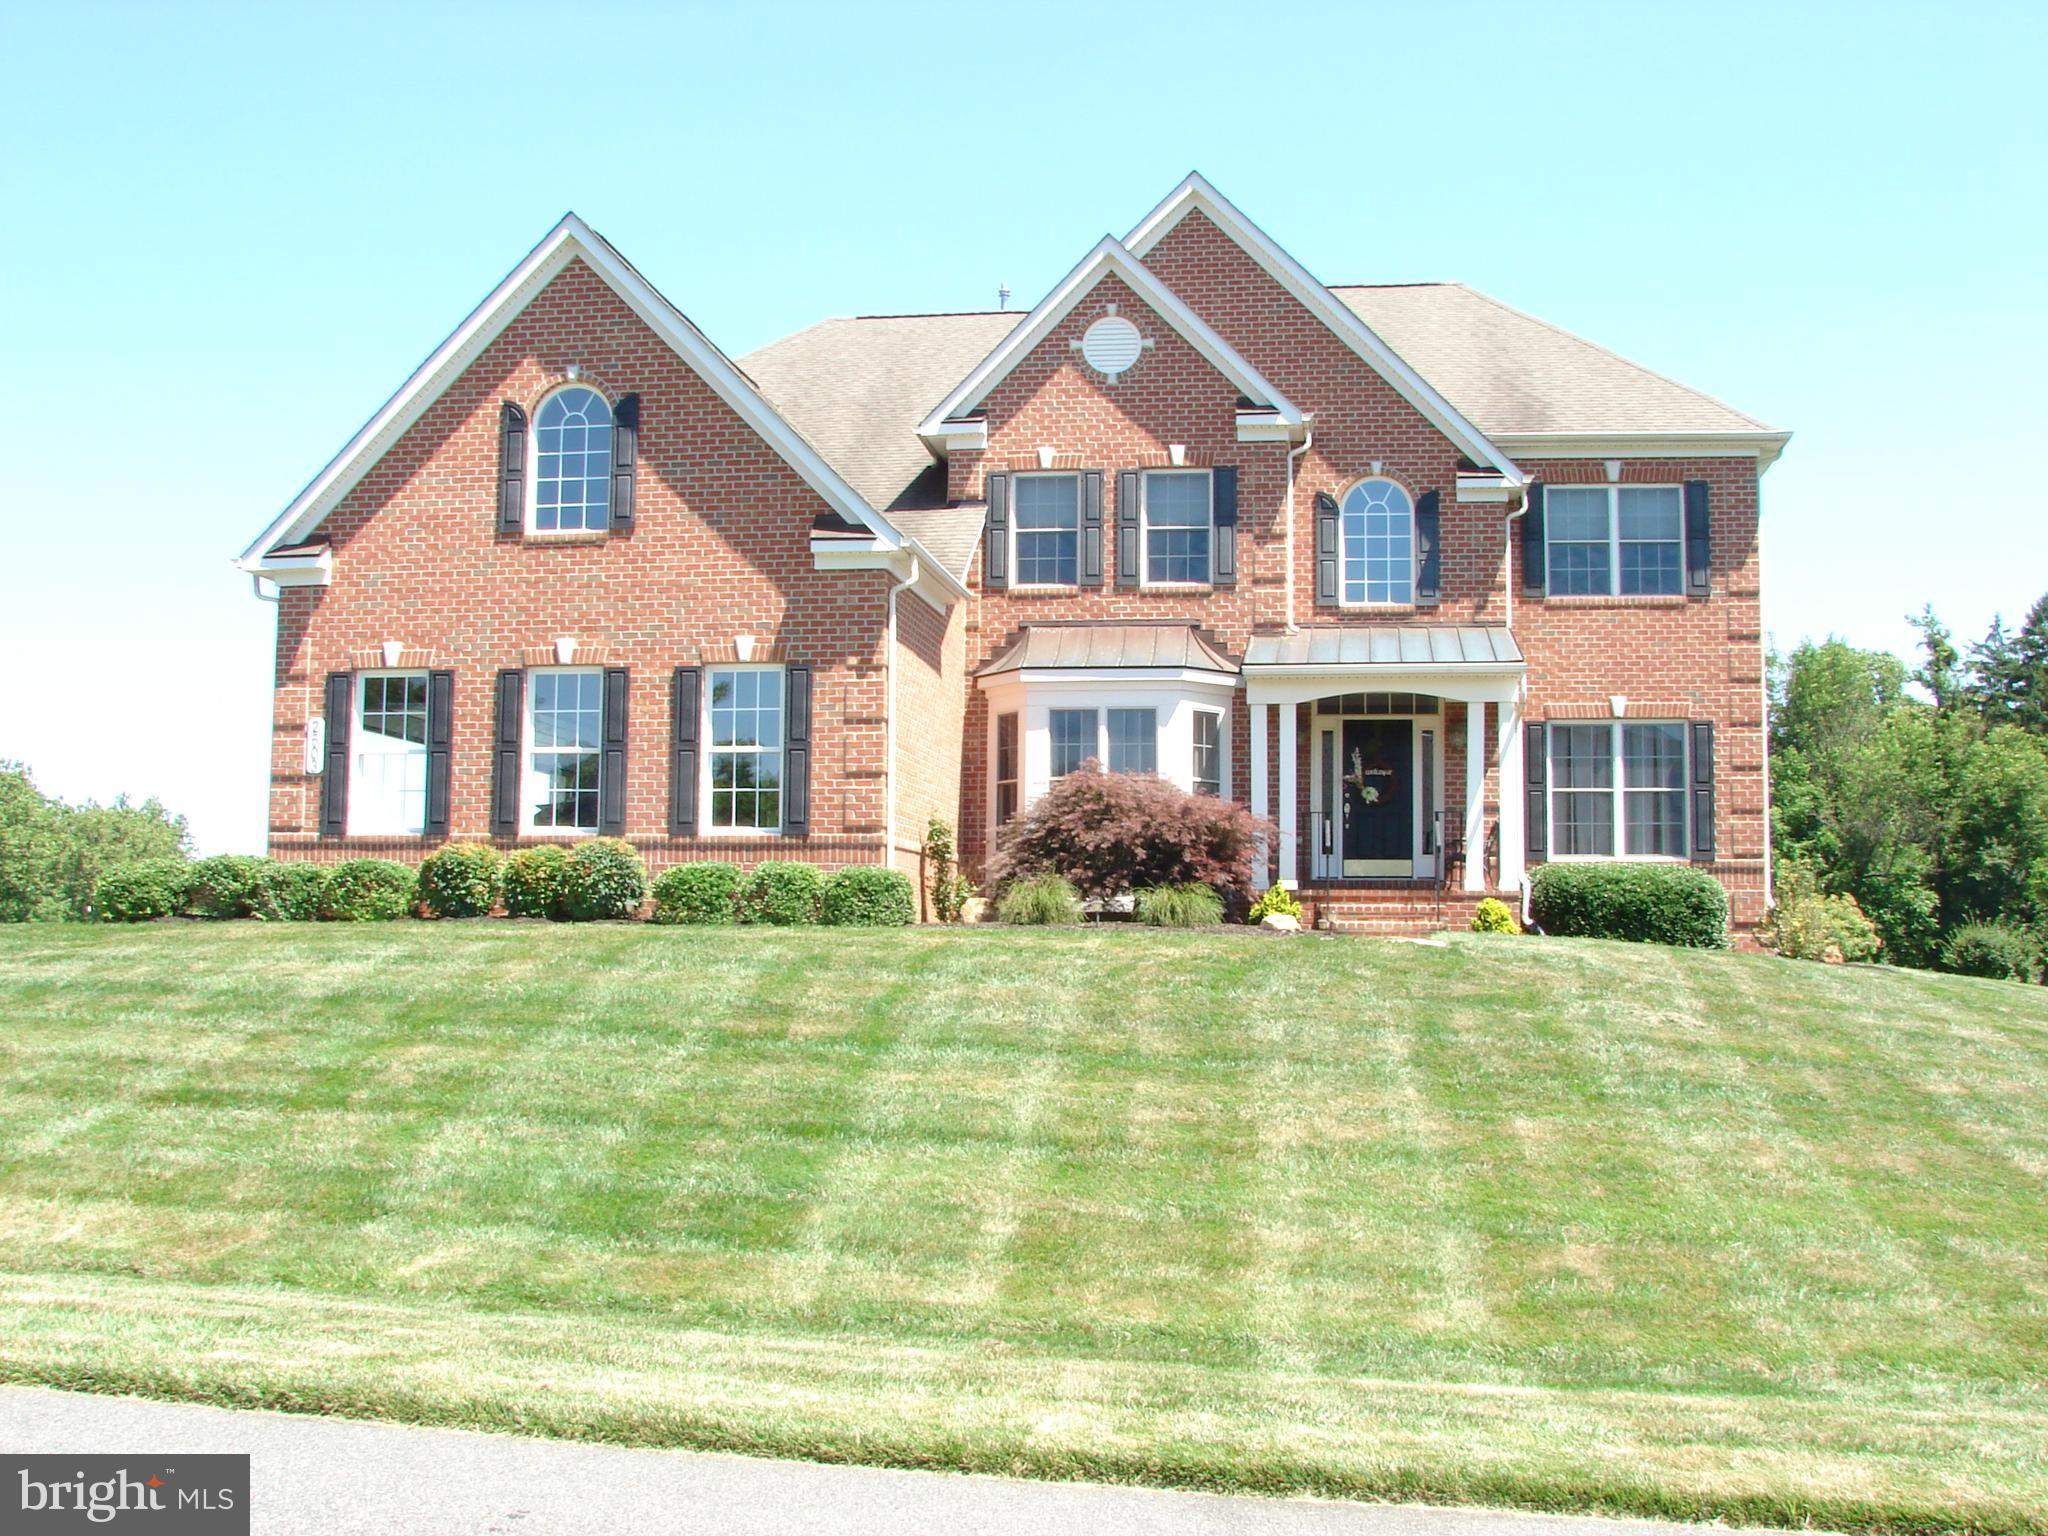 2603 LAUREL VIEW COURT, FALLSTON, MD 21047